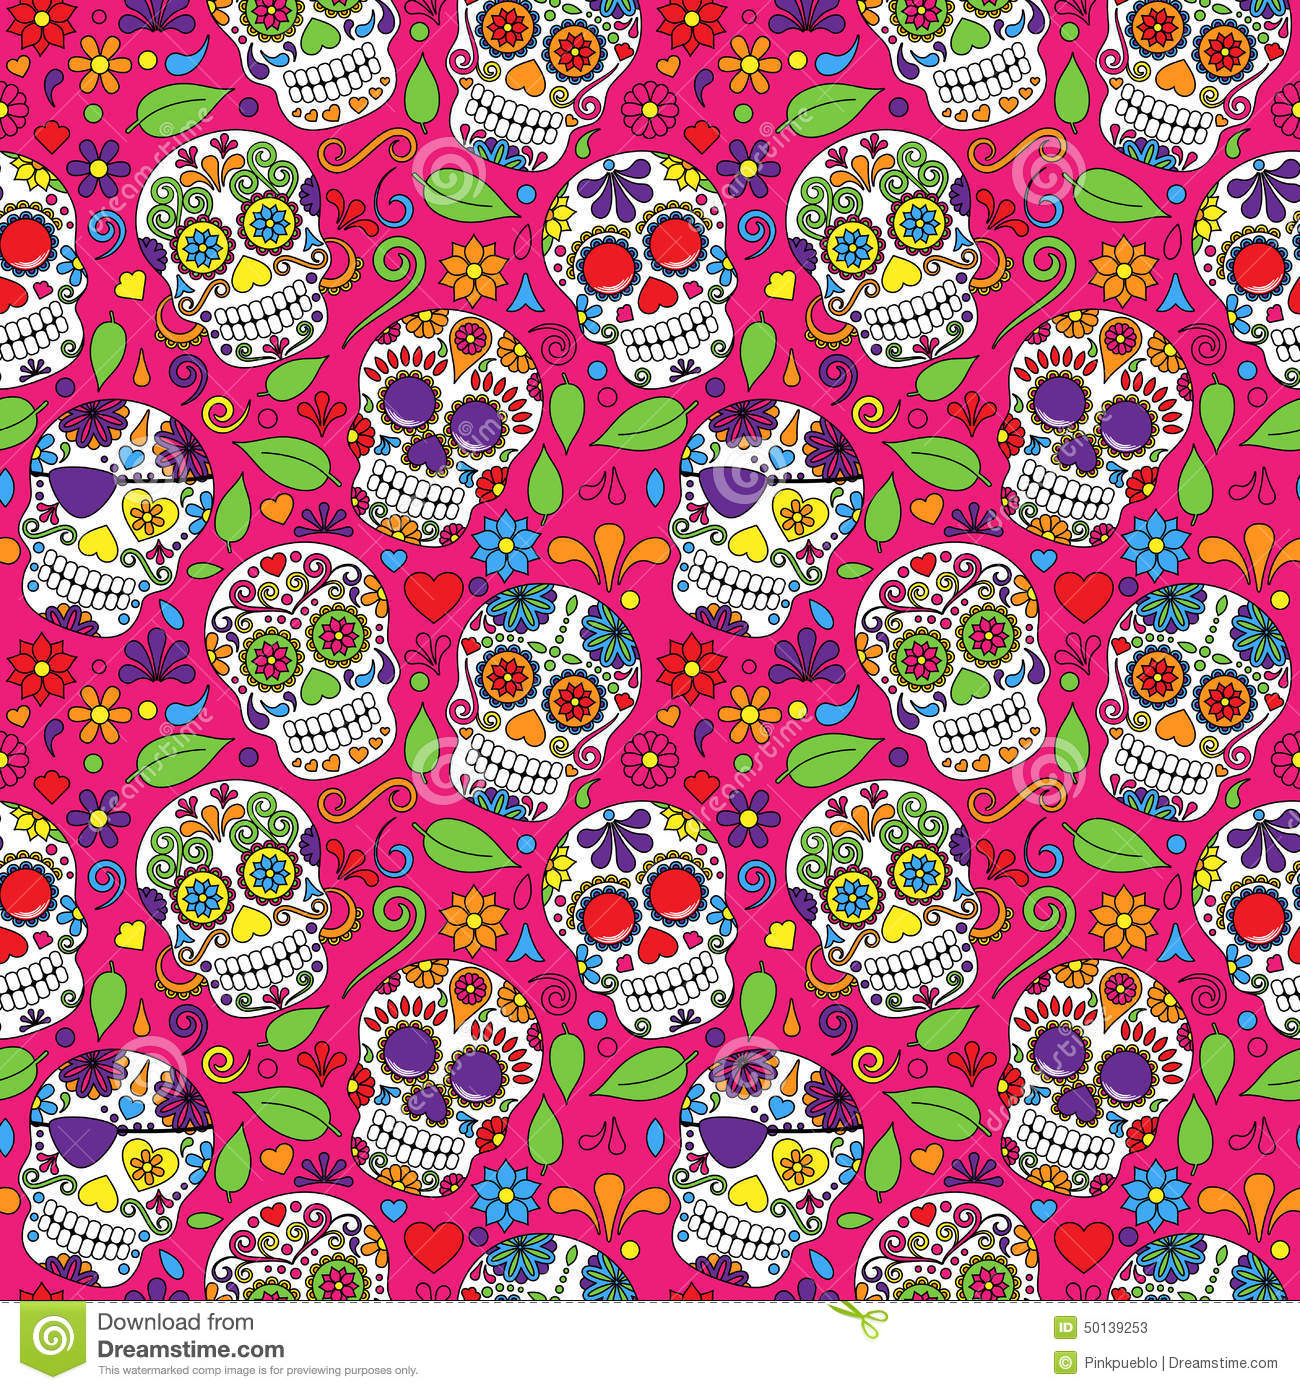 Giorno di Sugar Skull Seamless Vector Background morto